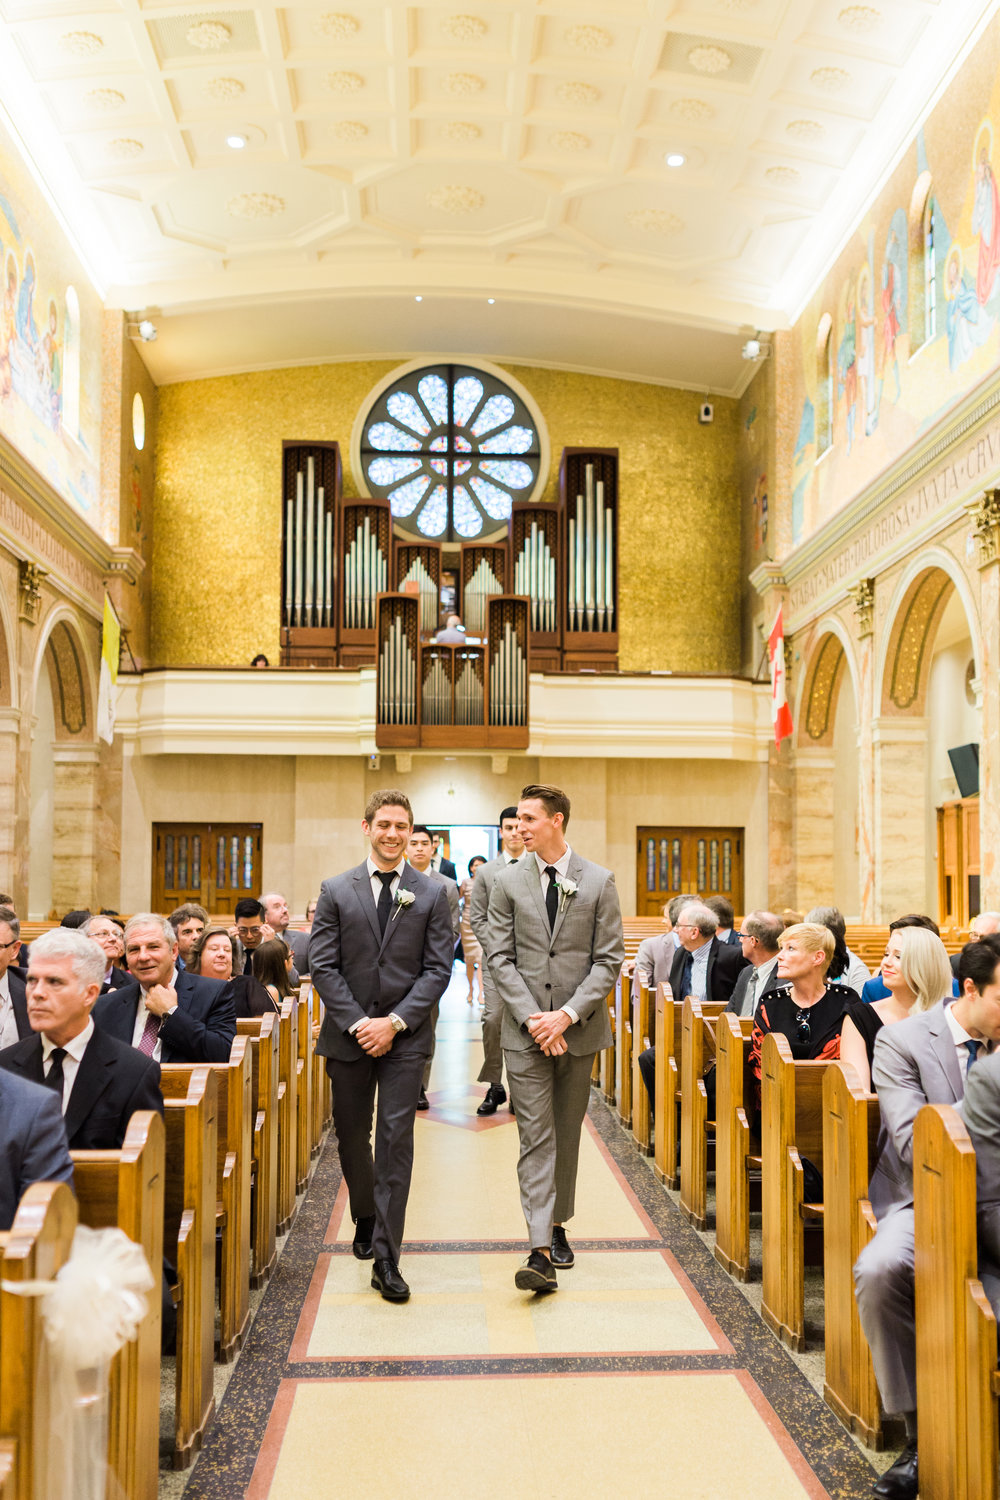 Toronto Fine Art Photographer - Lady of Sorrows Catholic Church Wedding - Ceremony-23.jpg